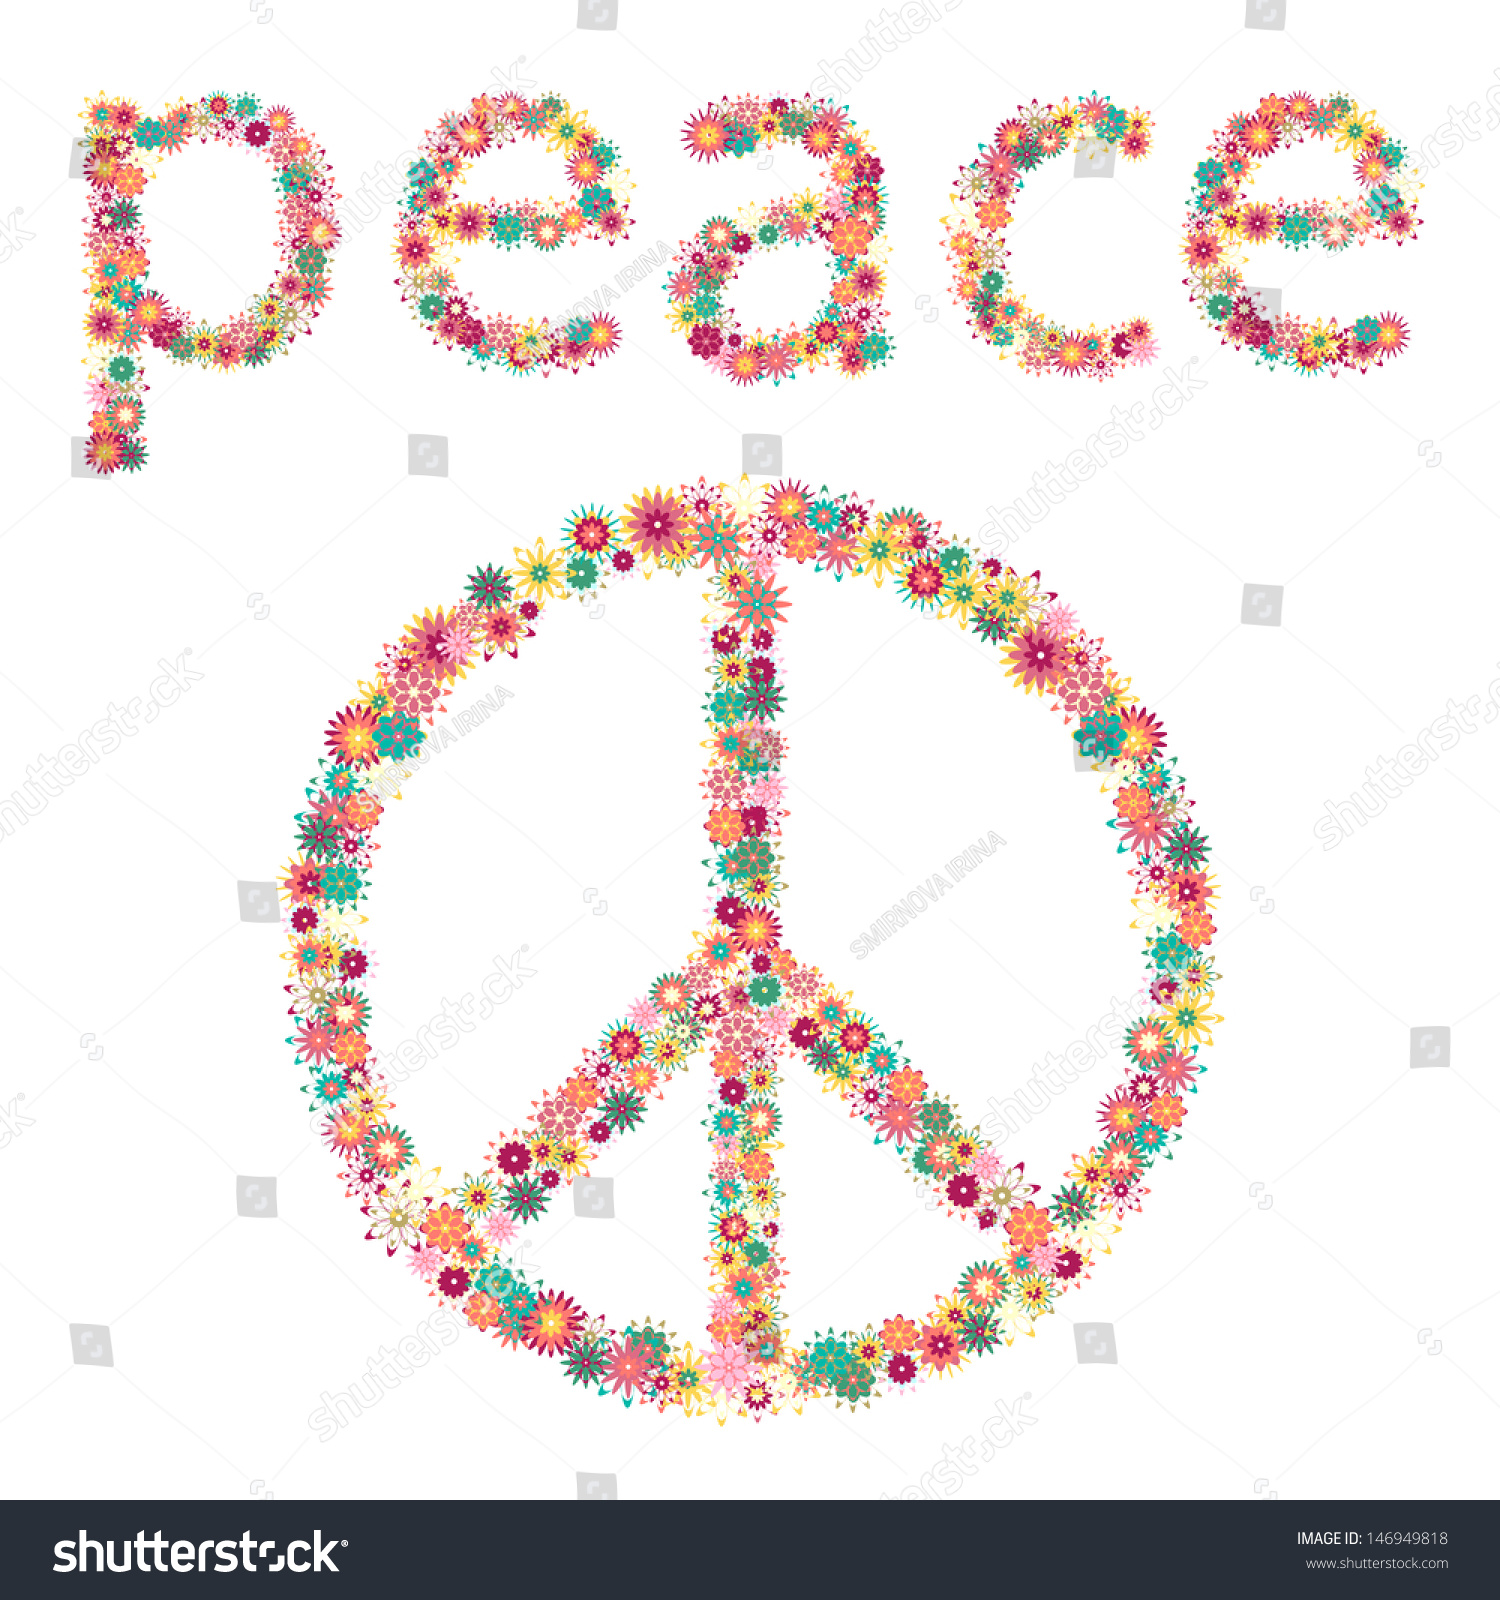 Sign peace pacifism symbol hippie culture stock vector 146949818 sign of peace and pacifism symbol of the hippie culture buycottarizona